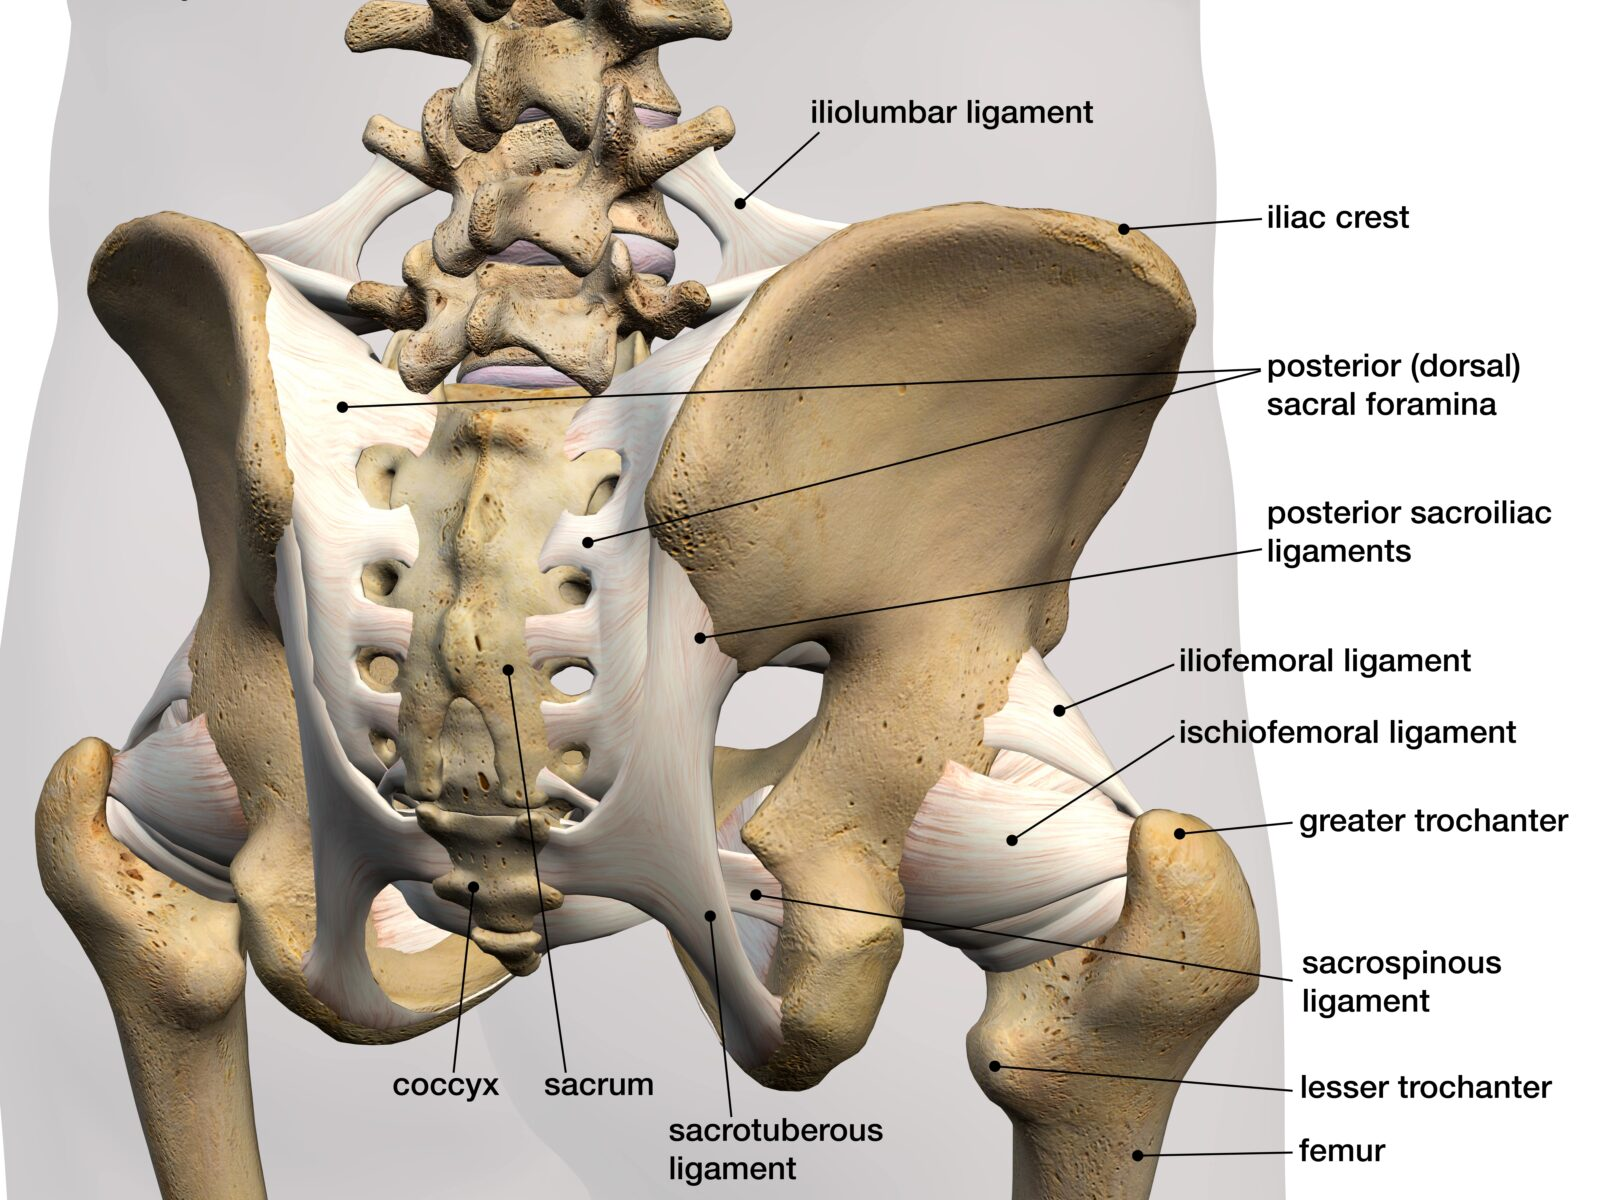 ligaments attached to tailbone and pelvic bones